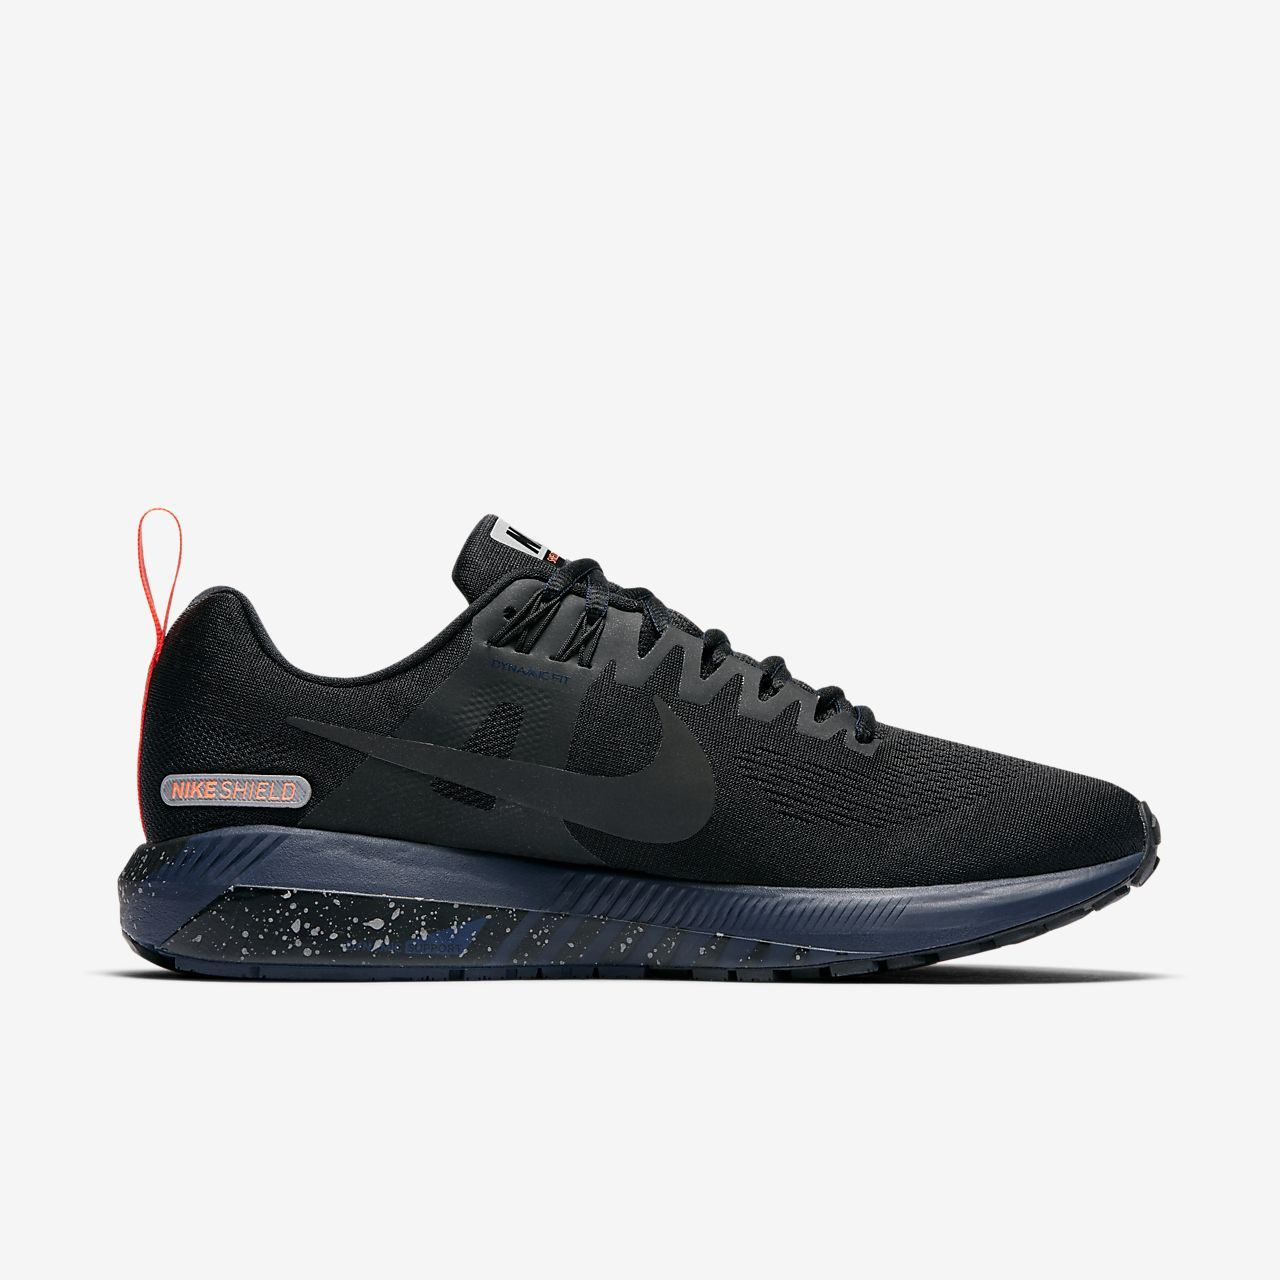 ad6babdcff805 Nike AIR ZOOM STRUCTURE 21 SHIELD